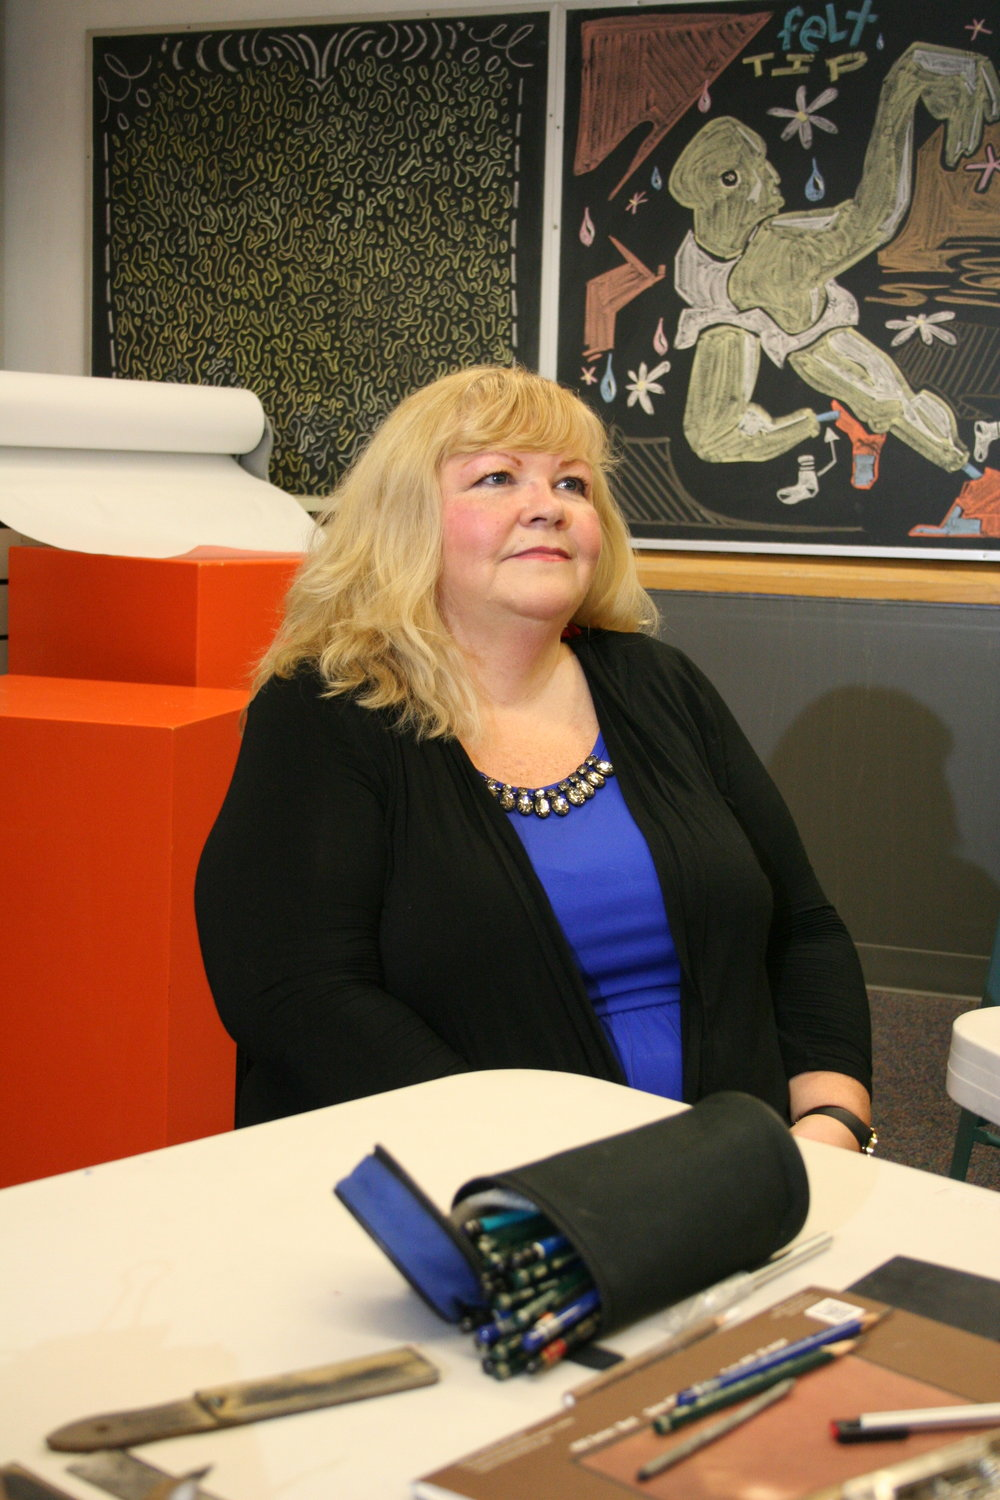 Marge Williams at Artful Cleveland 1-25-19.JPG